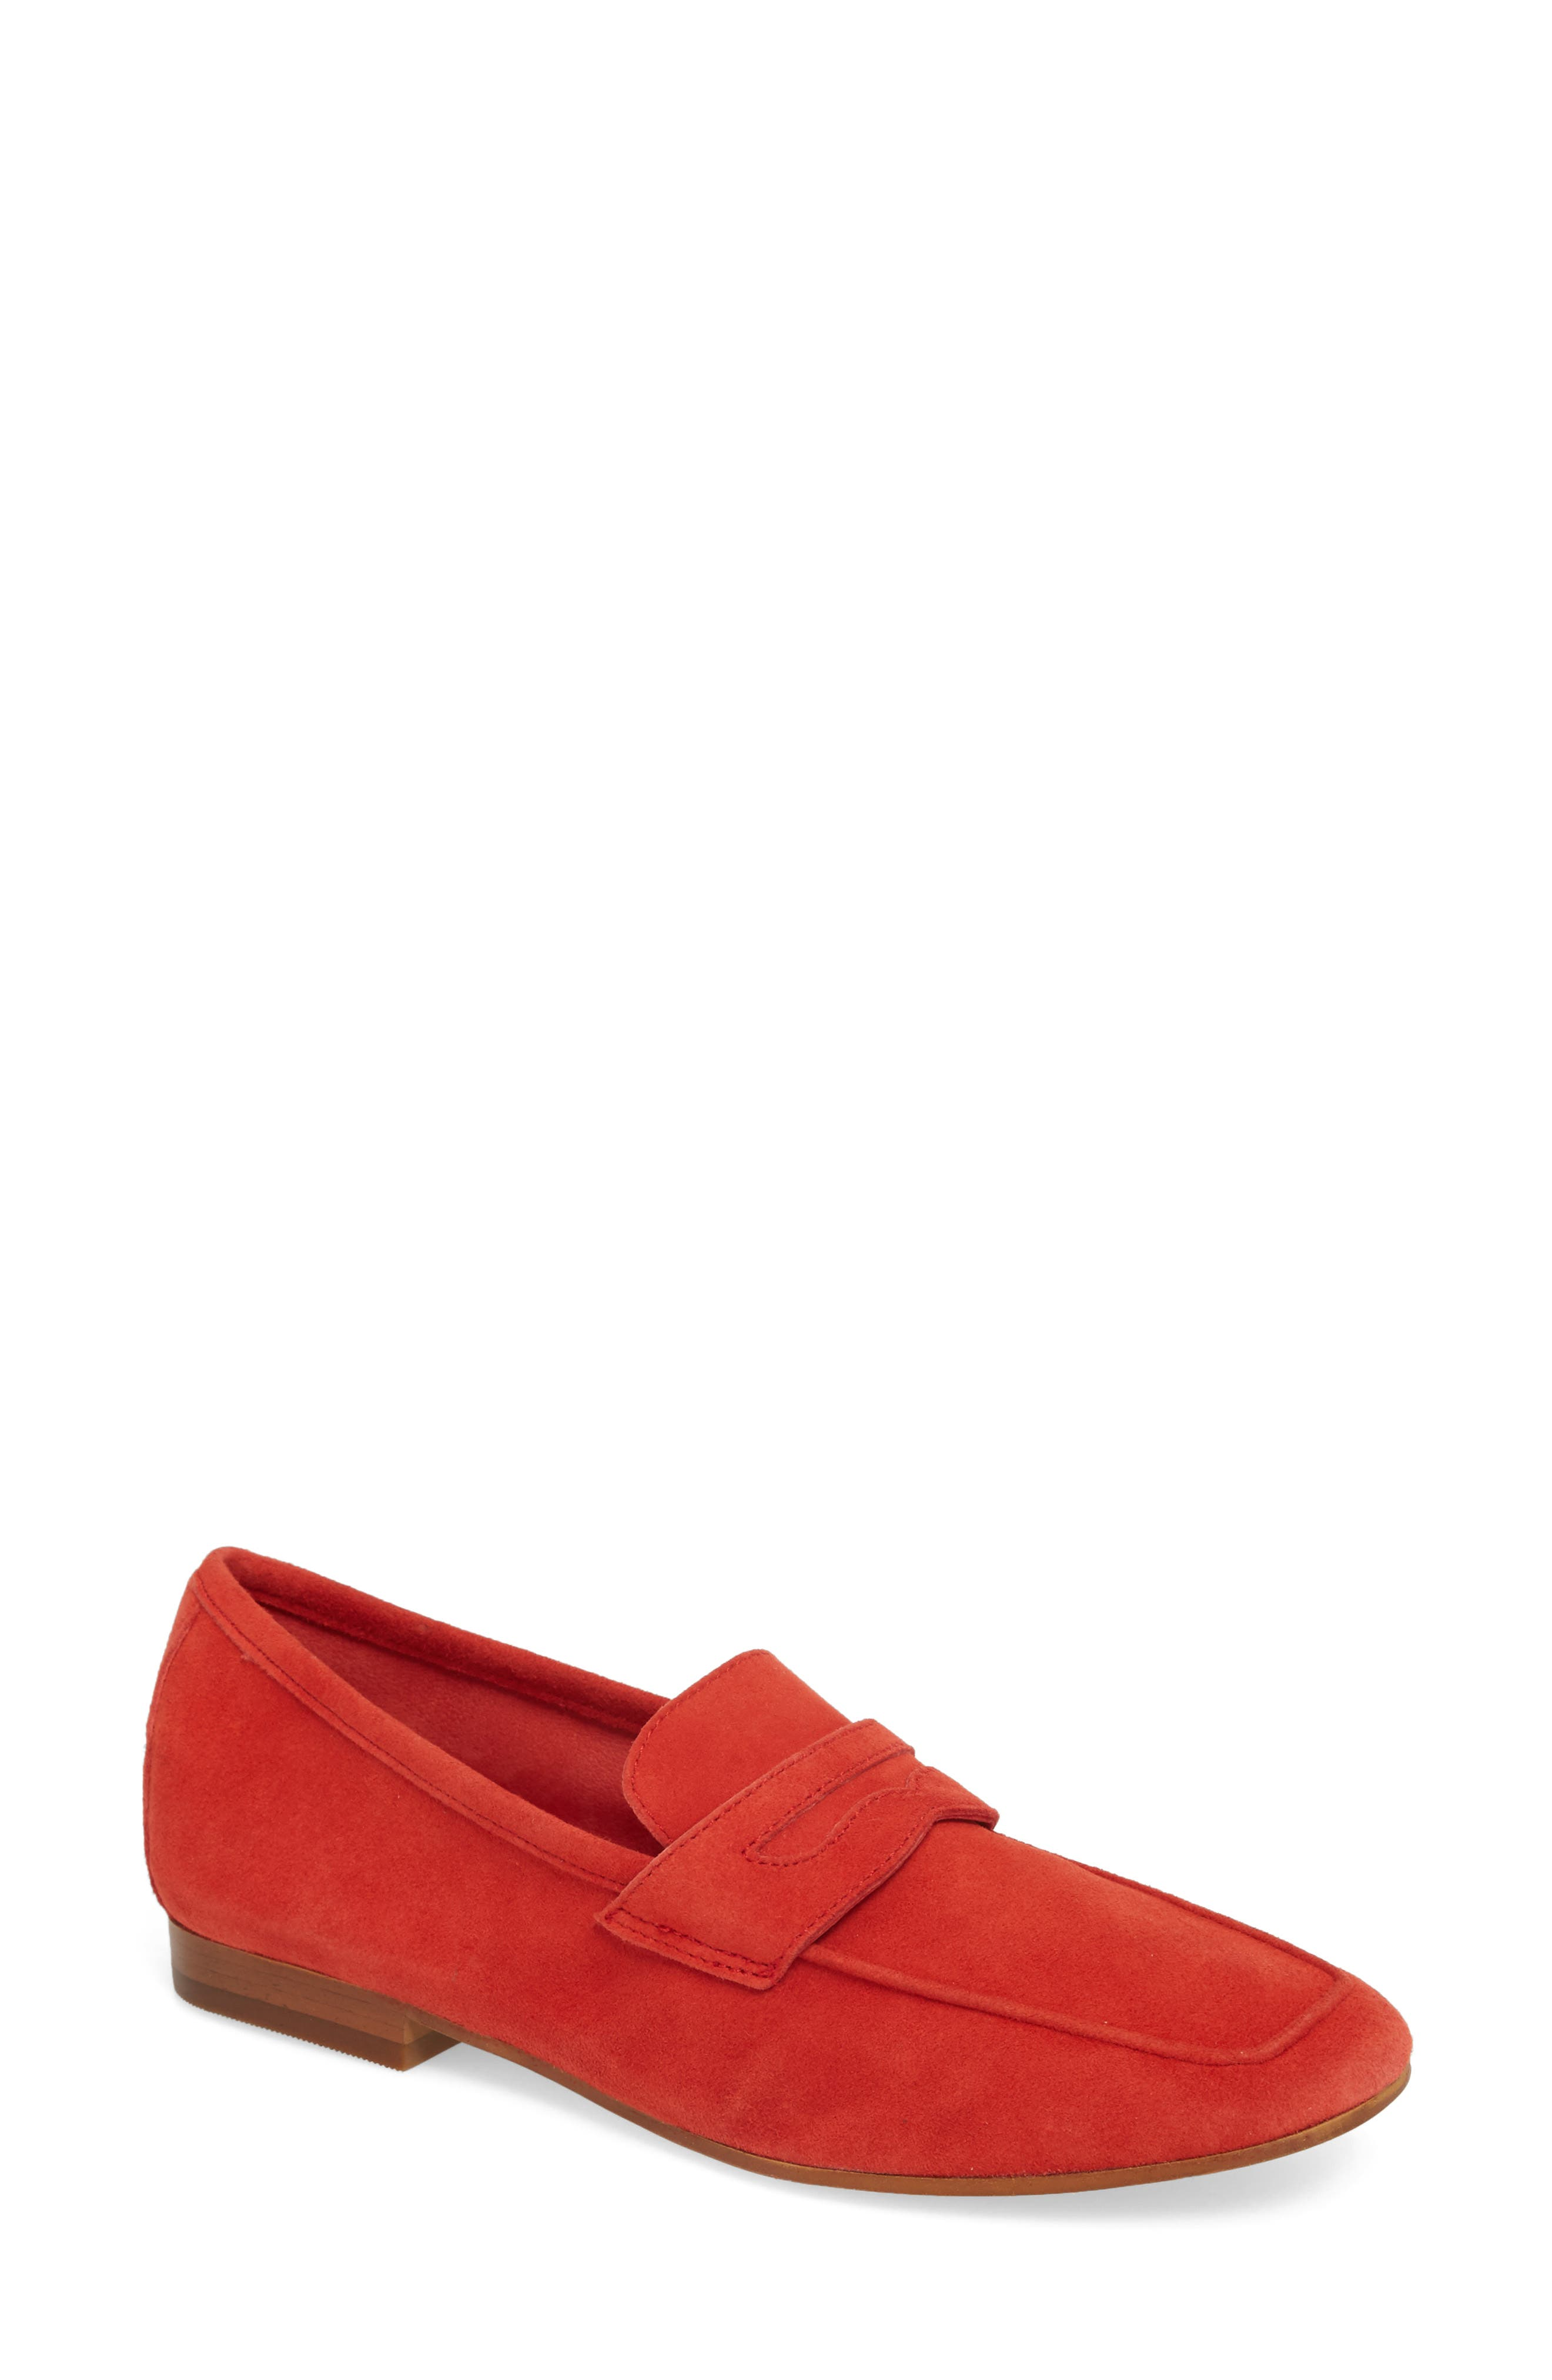 Dean Apron Toe Penny Loafer,                         Main,                         color, Red Suede